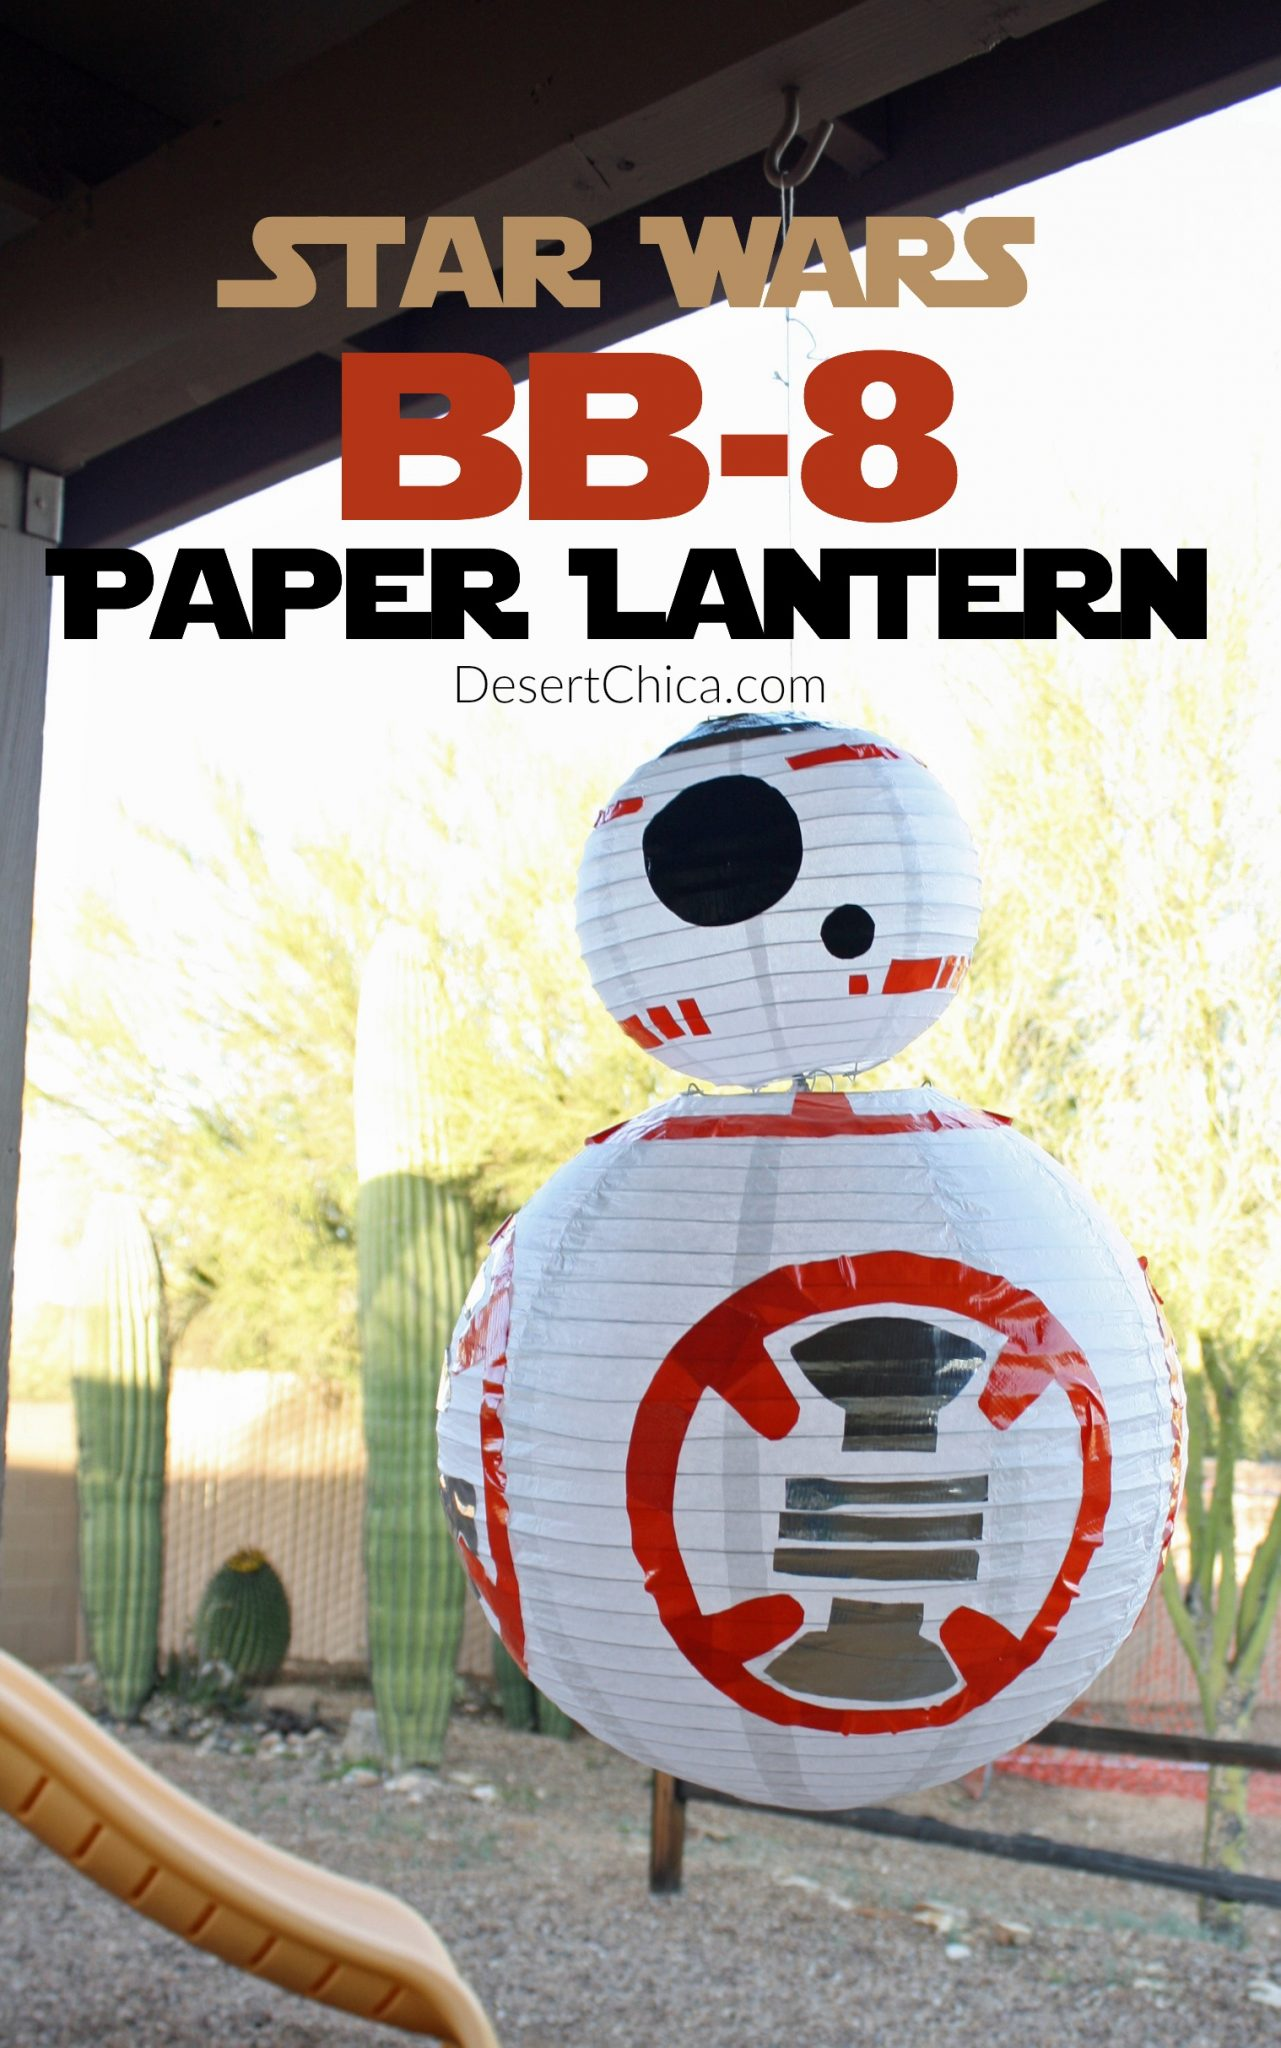 Looking for DIY Star Wars Party or decor ideas? How about an easy to make BB-8 Paper Lantern Craft. It can easily be turned into a Star Wars light as well!